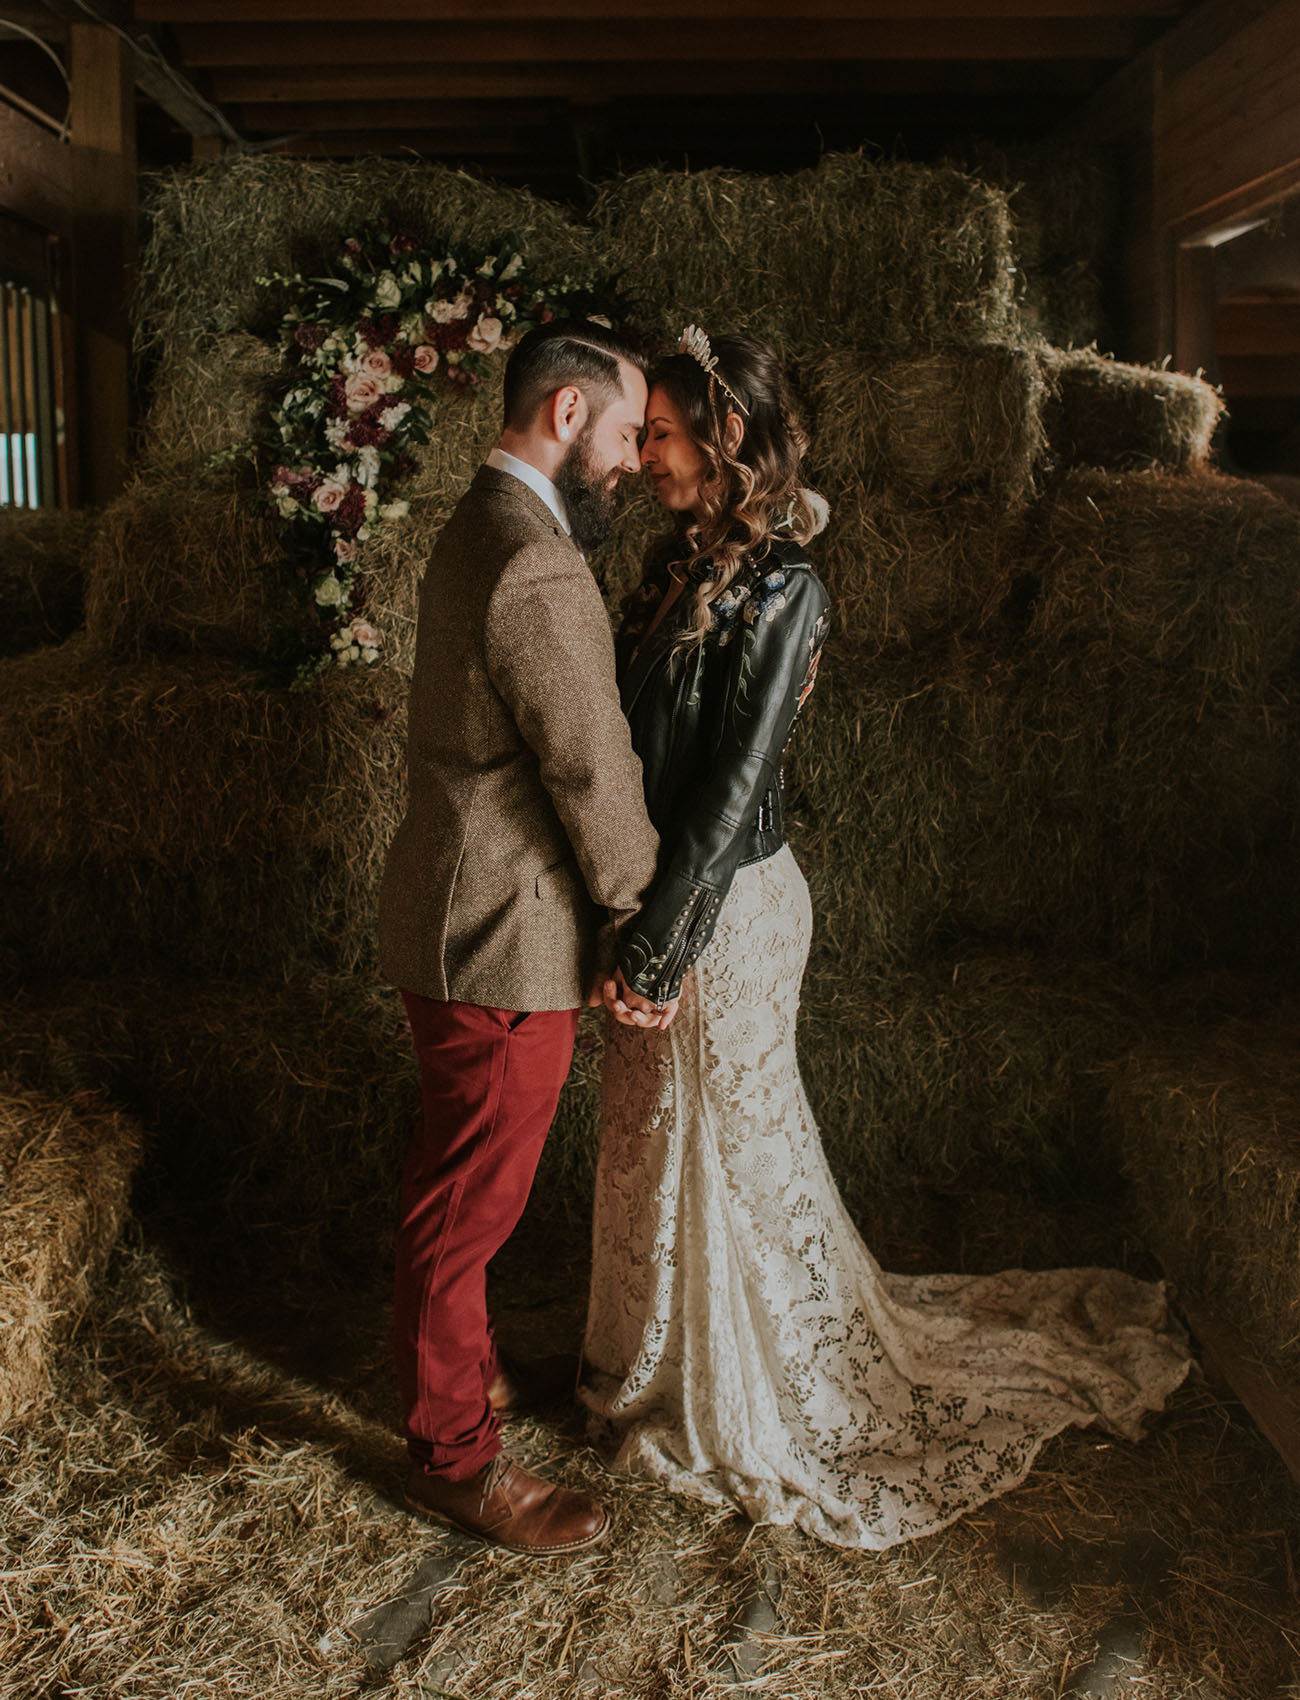 Flower embellished hay bales for a wedding backdrop is a very creative rustic idea